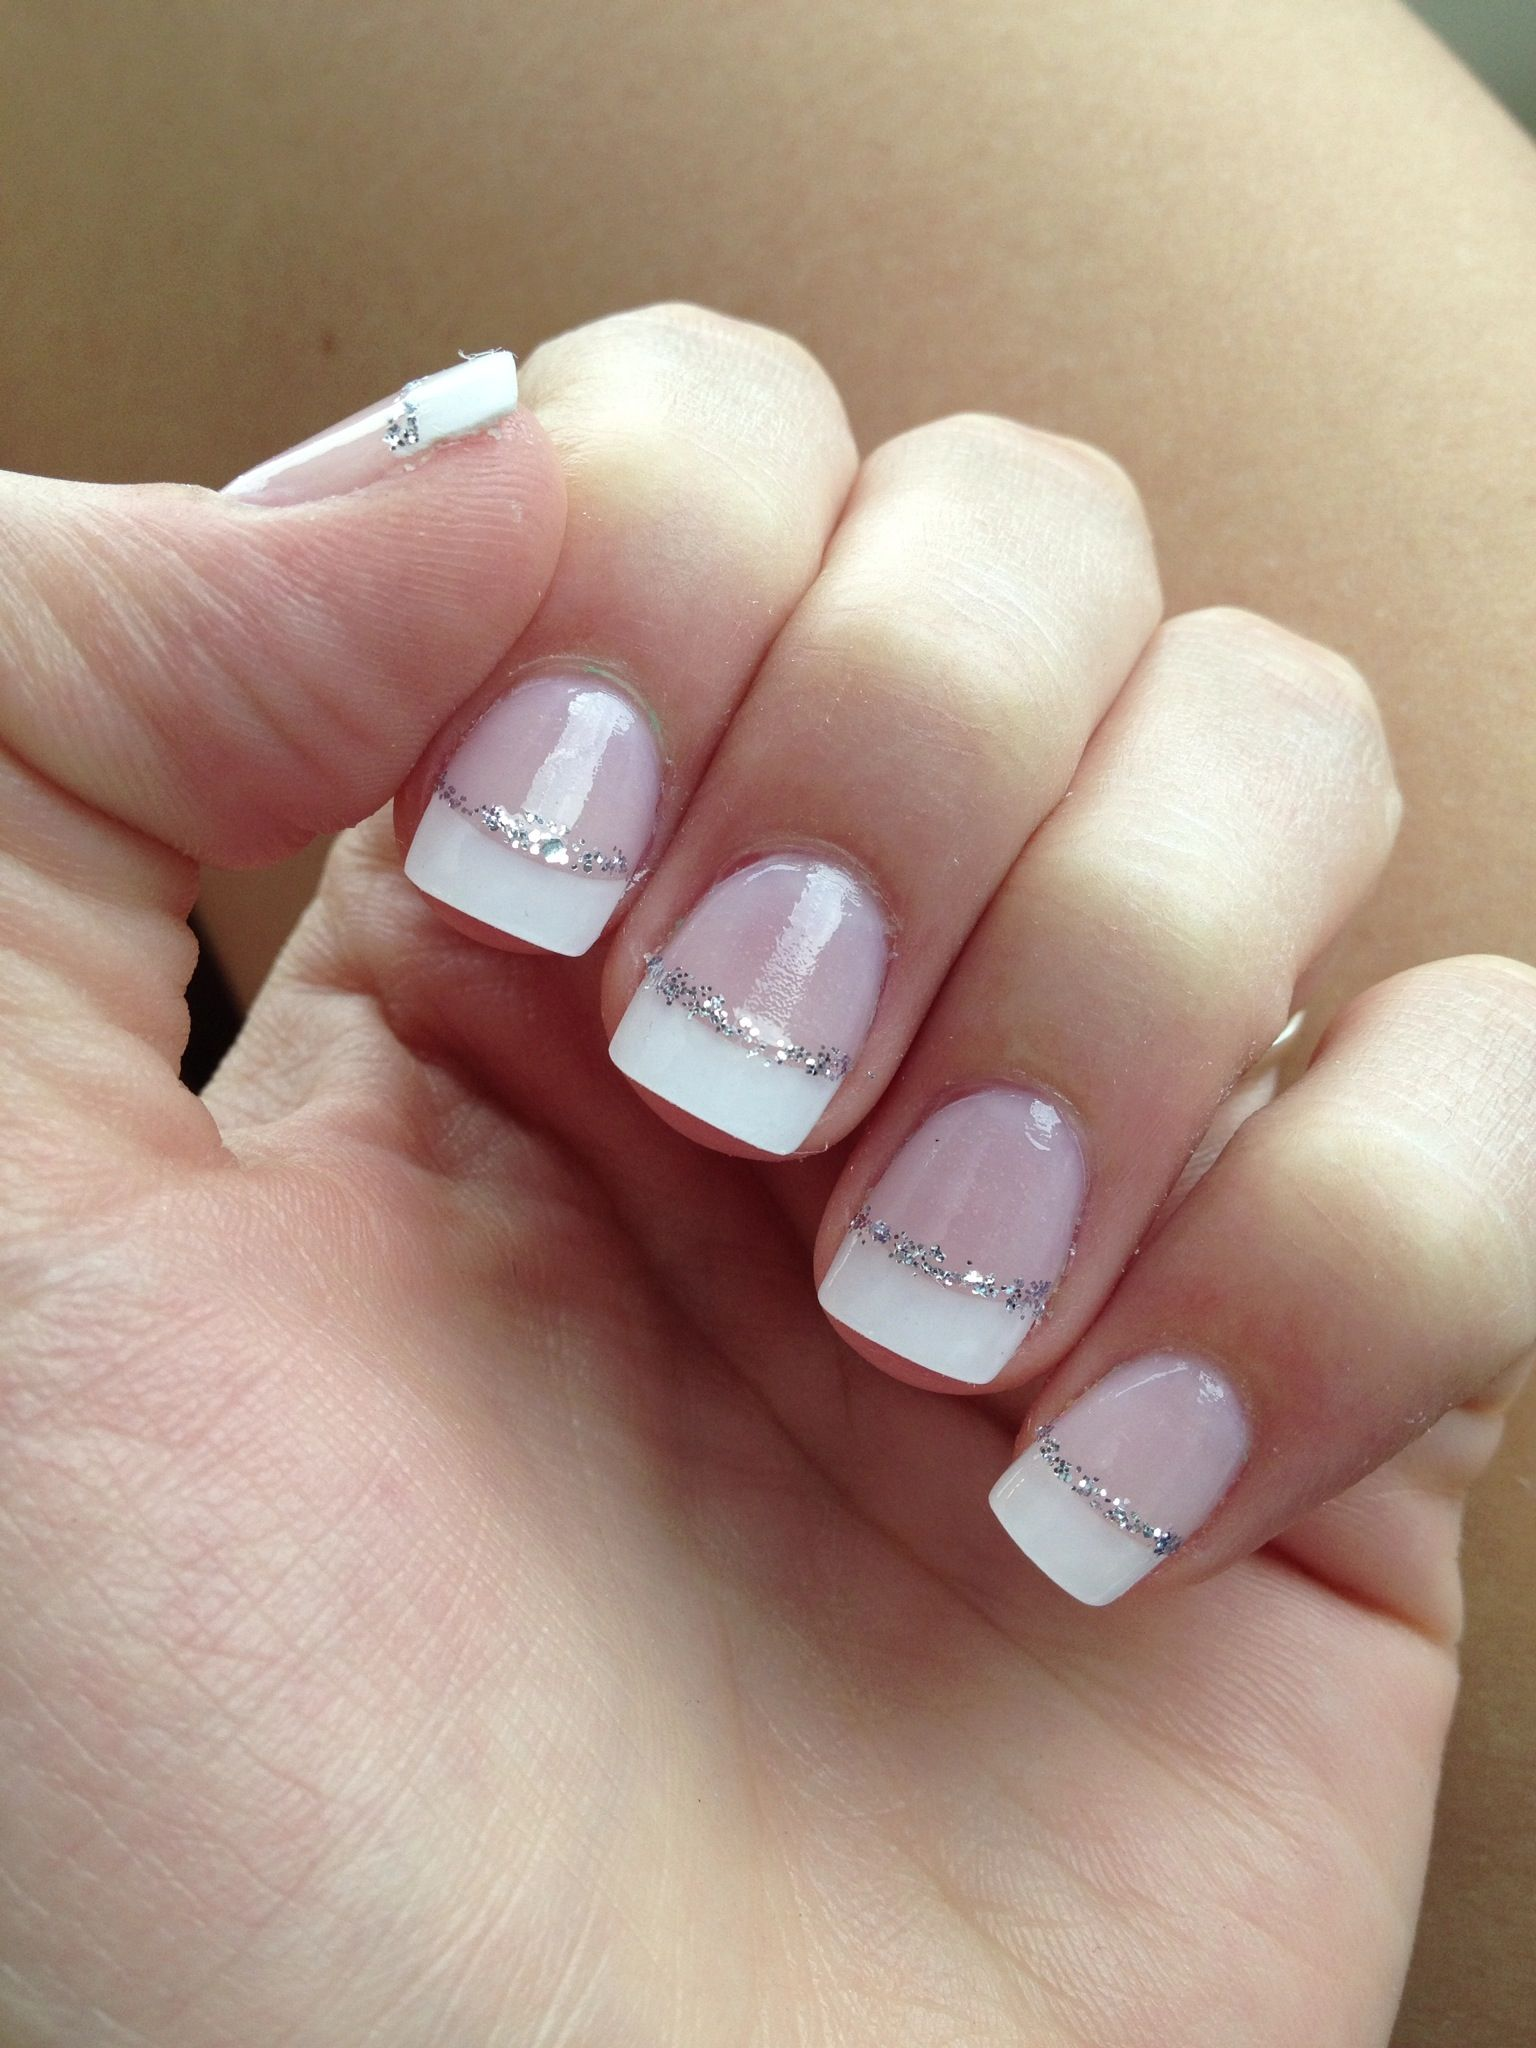 French Tip Nails With Silver Glitter Line French Tip Nail Designs Nail Designs Glitter French Tip Nails